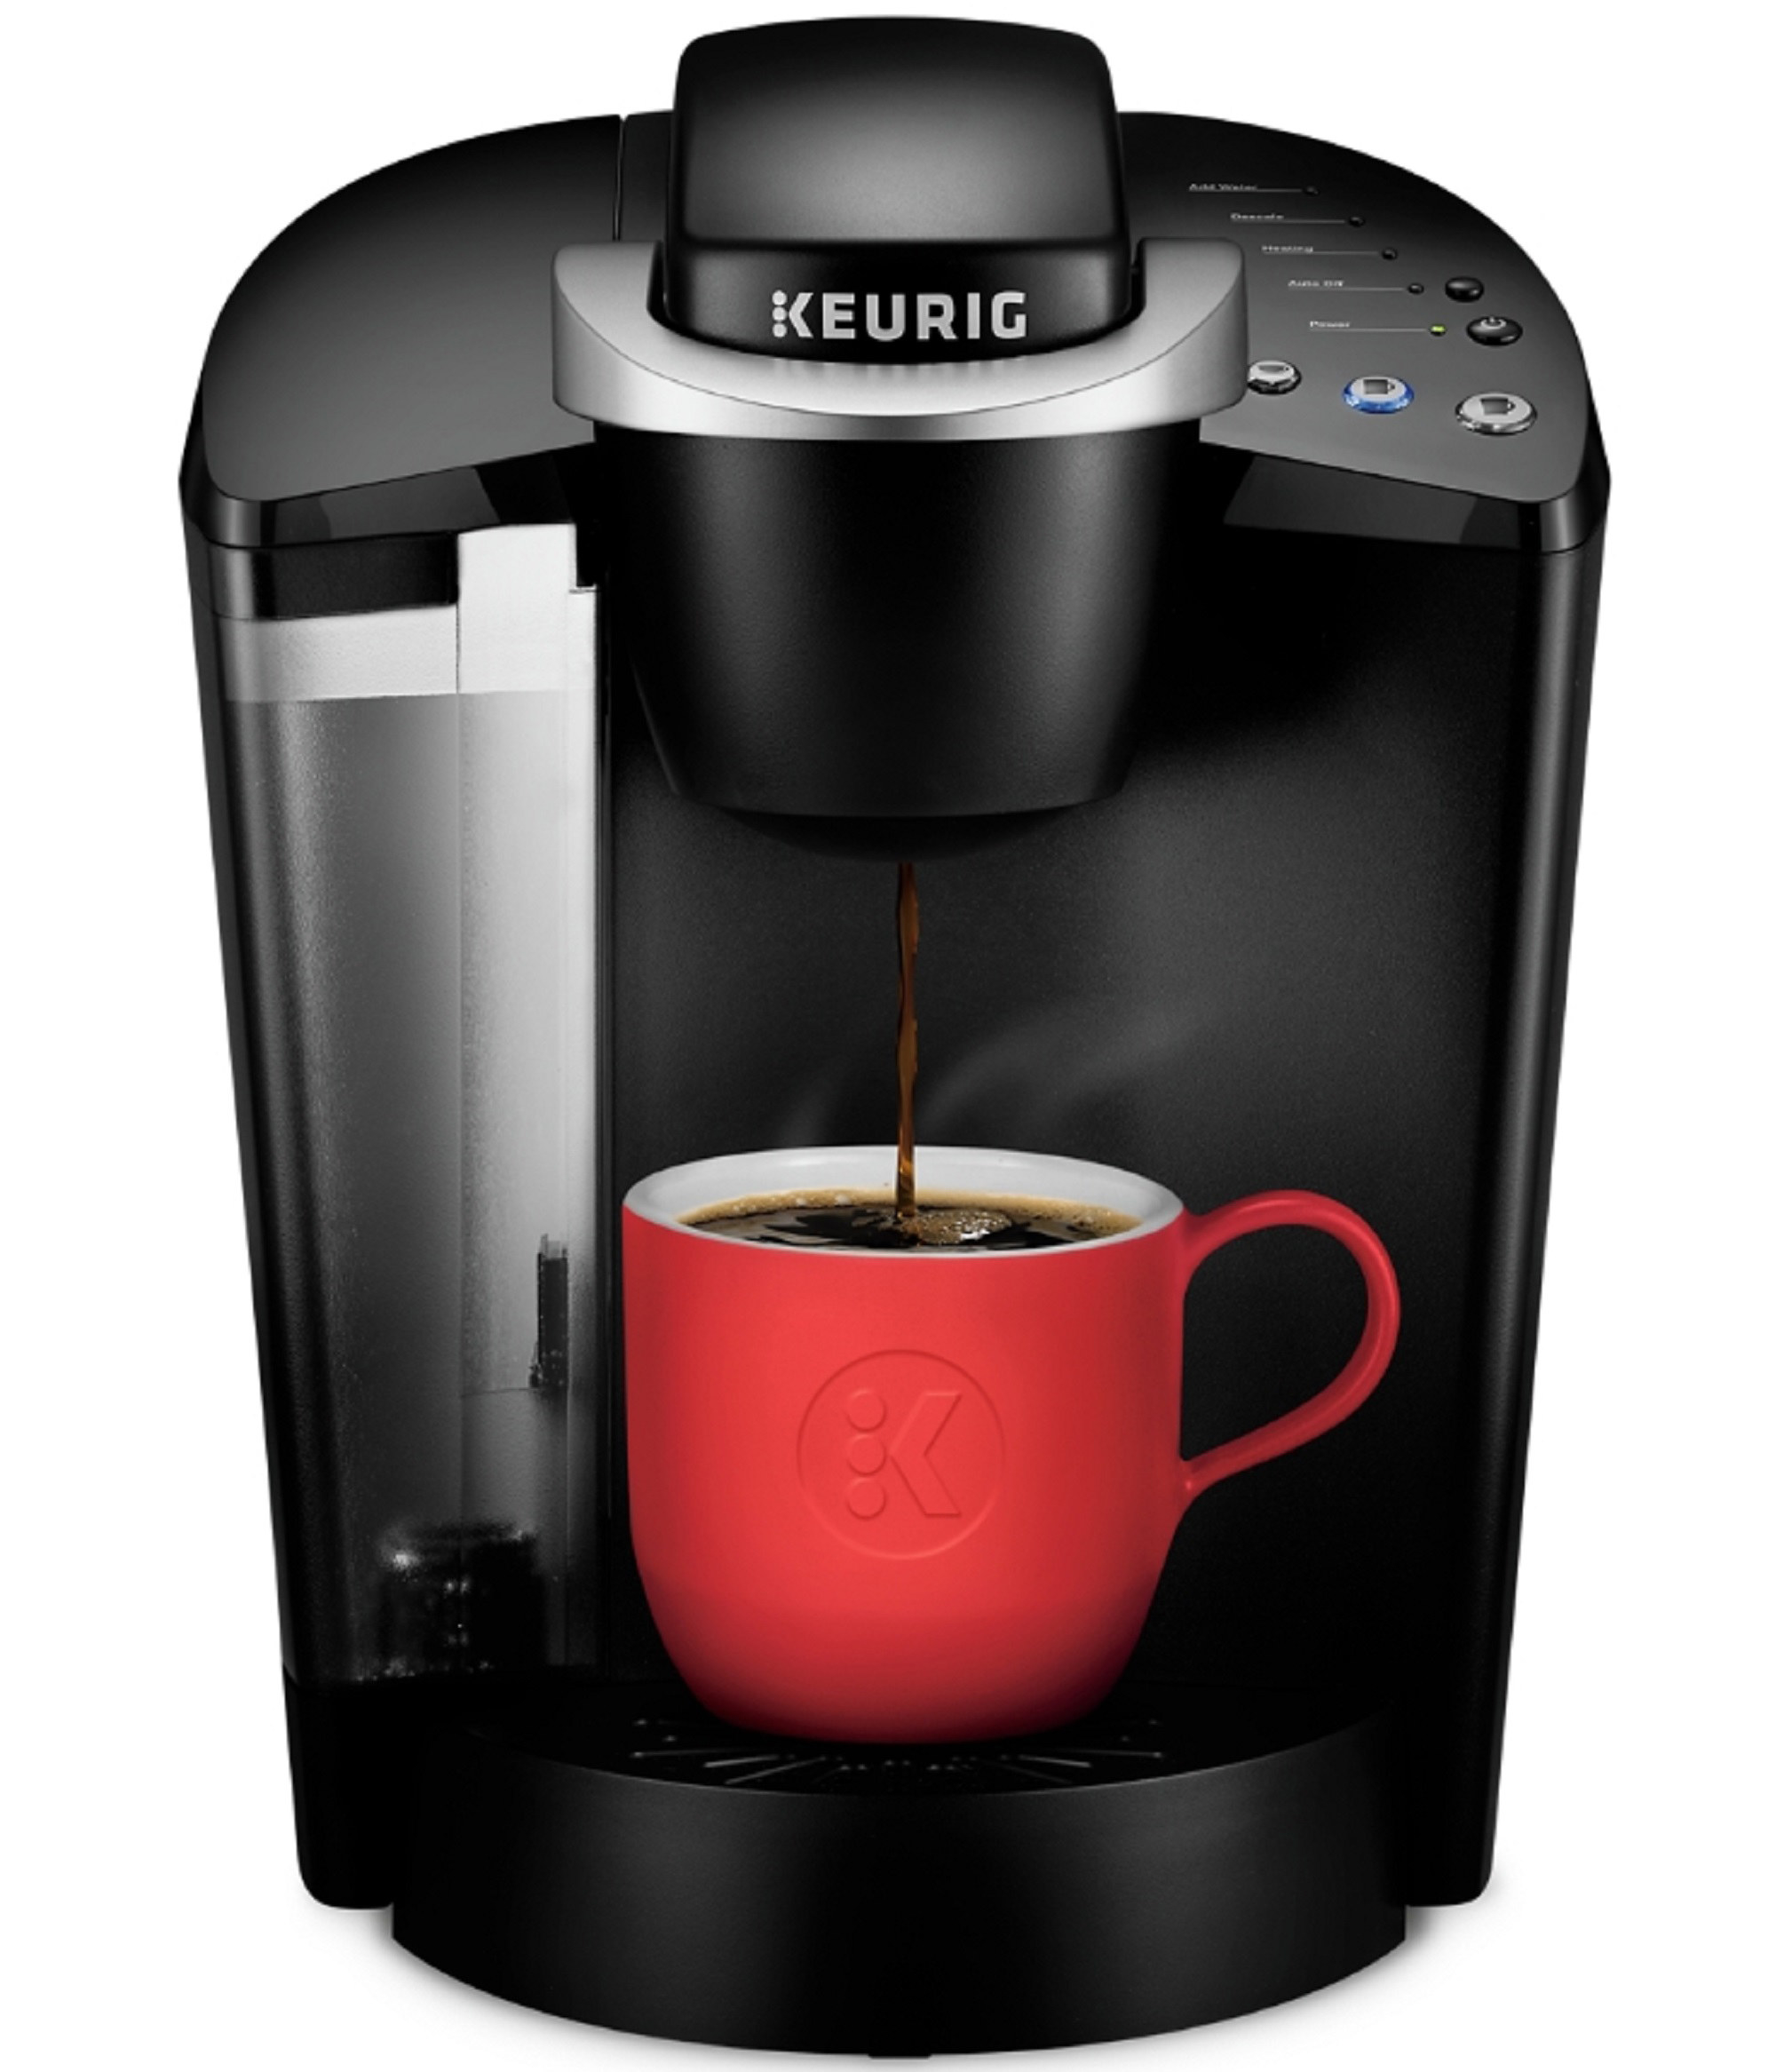 the coffee machine in black filling up a red mug with coffee